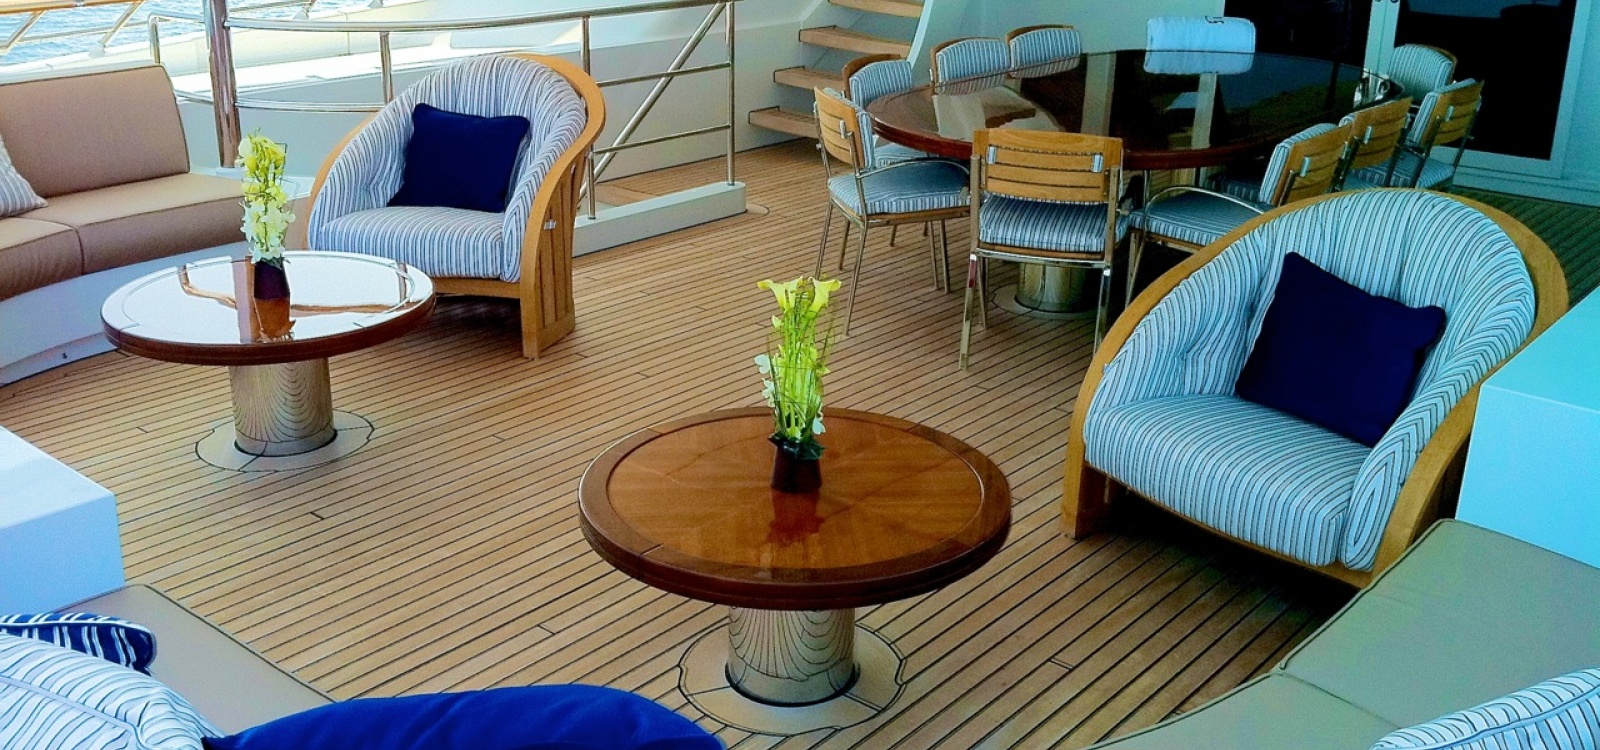 5 Rooms, Motor Yacht, For Charter, 7 Bathrooms, Listing ID 1067